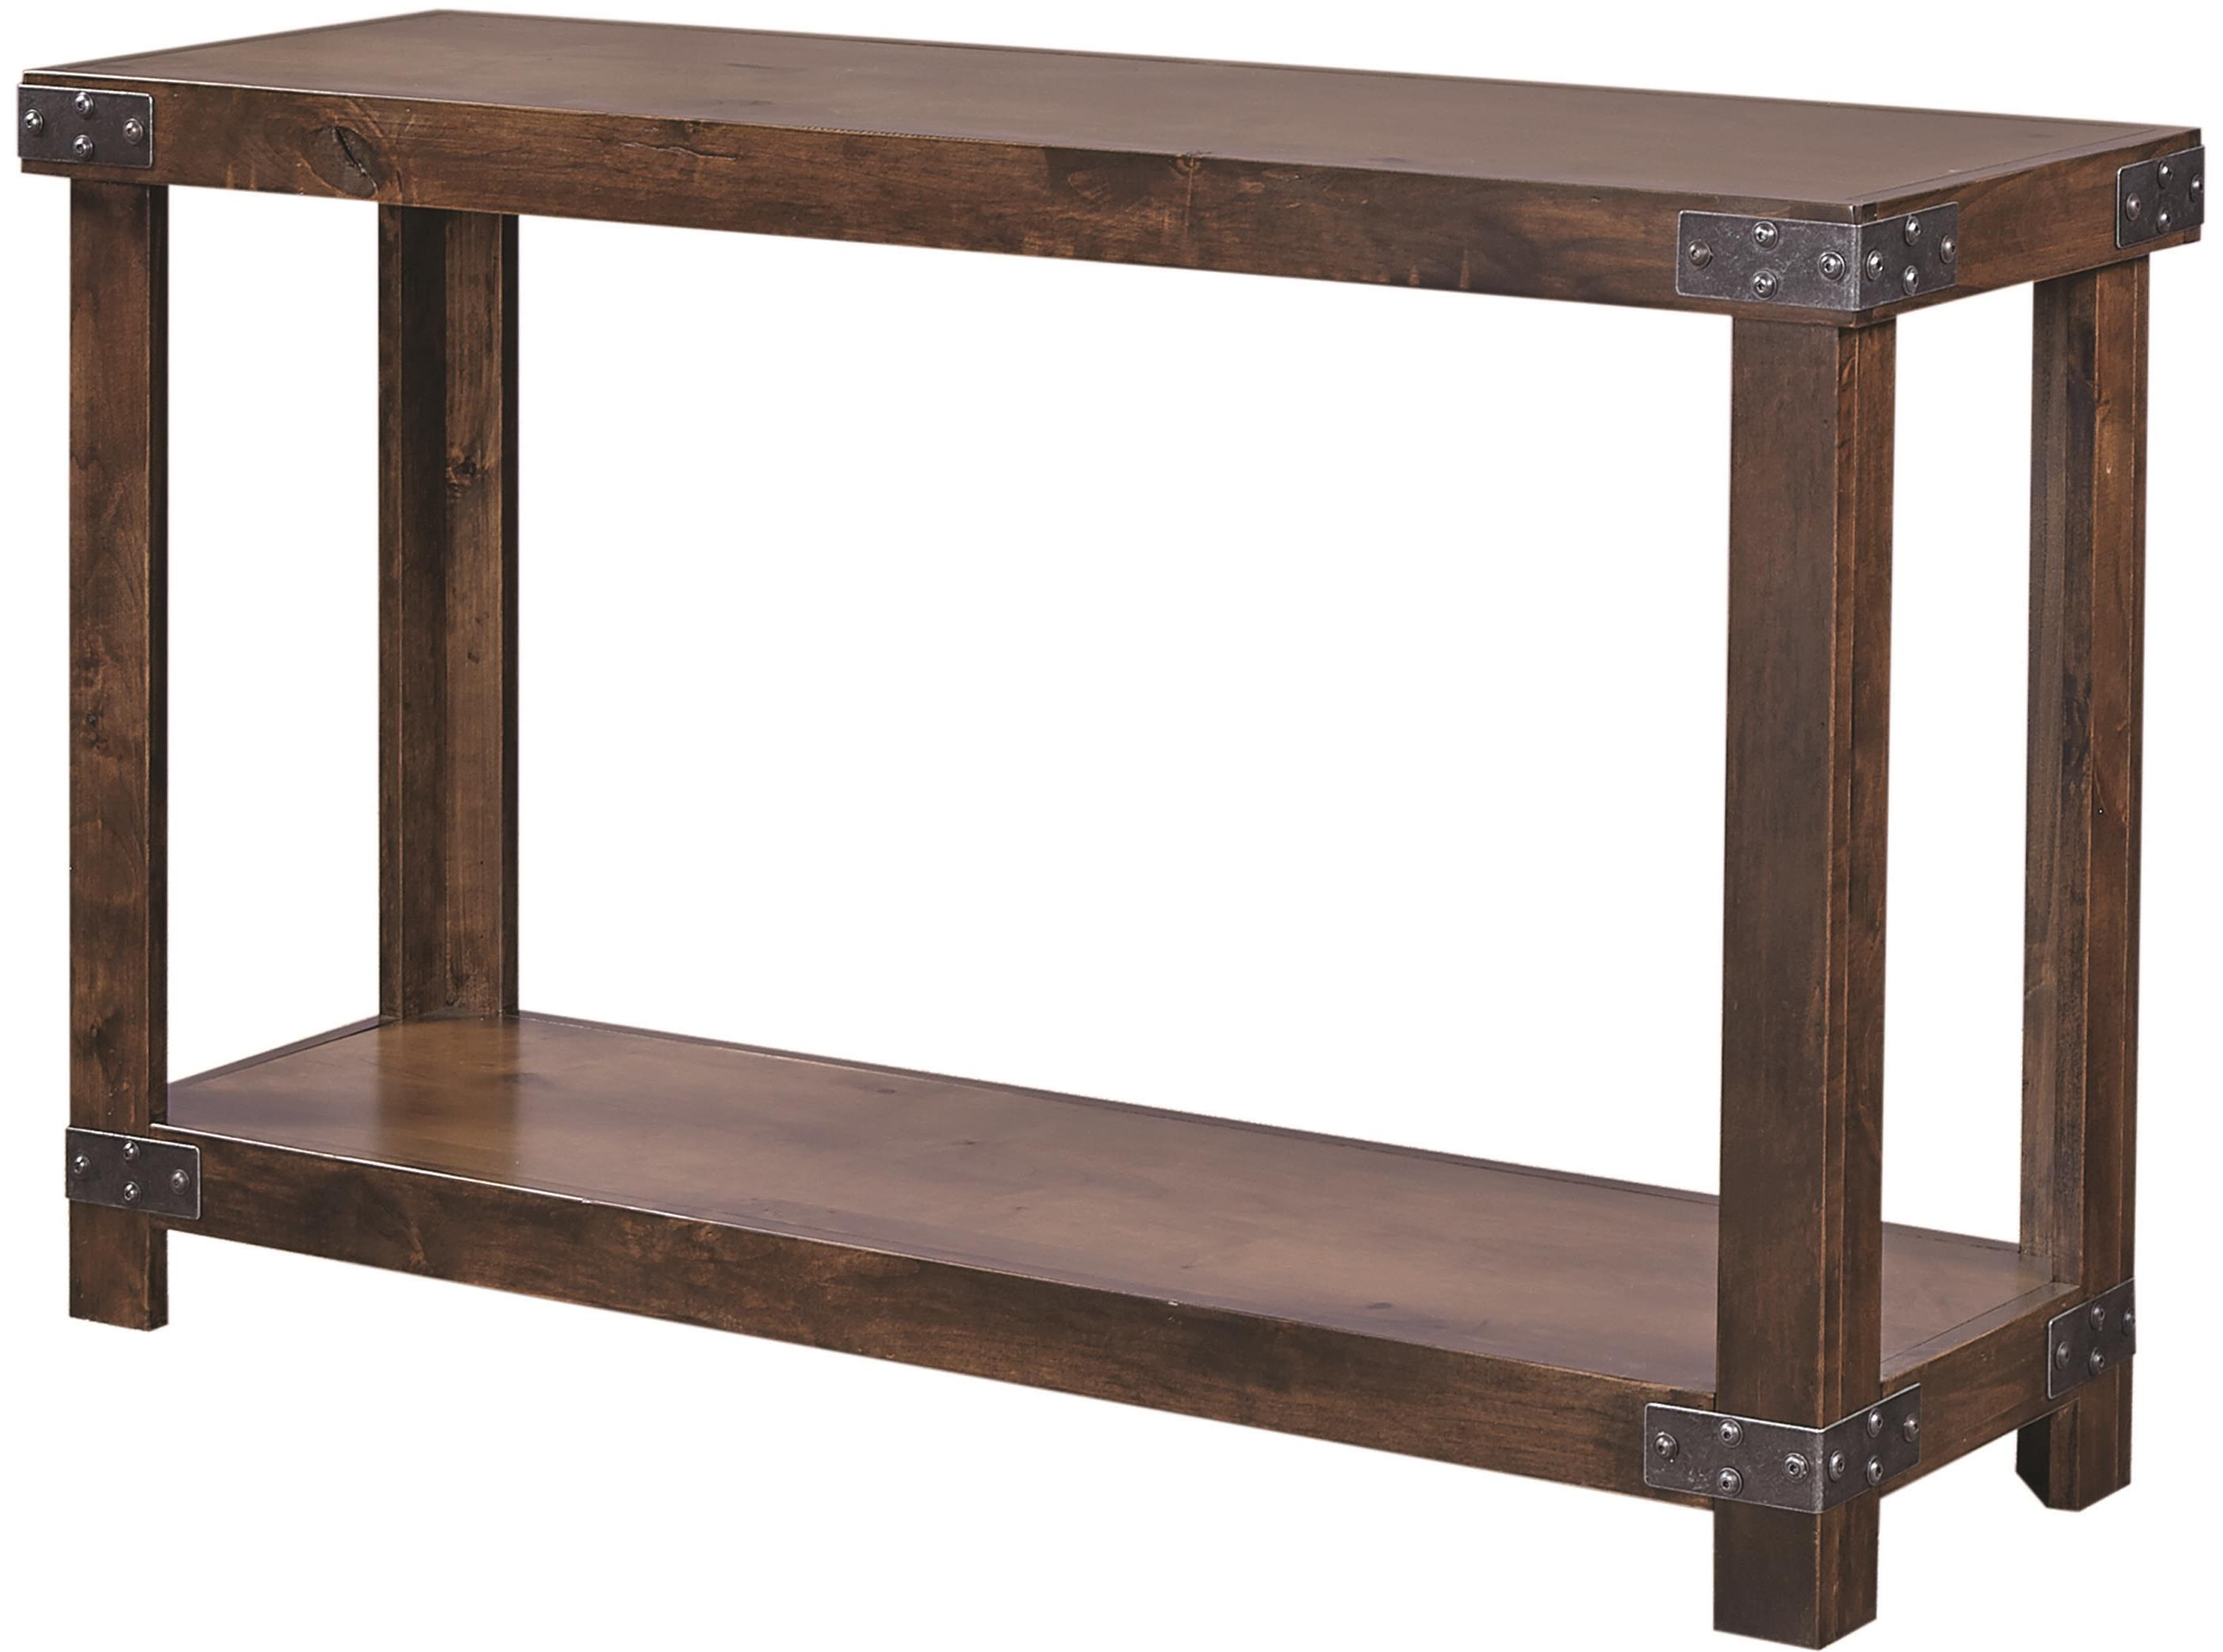 Aspenhome industrial dn915 tob sofa table with shelf for Sofa industrial